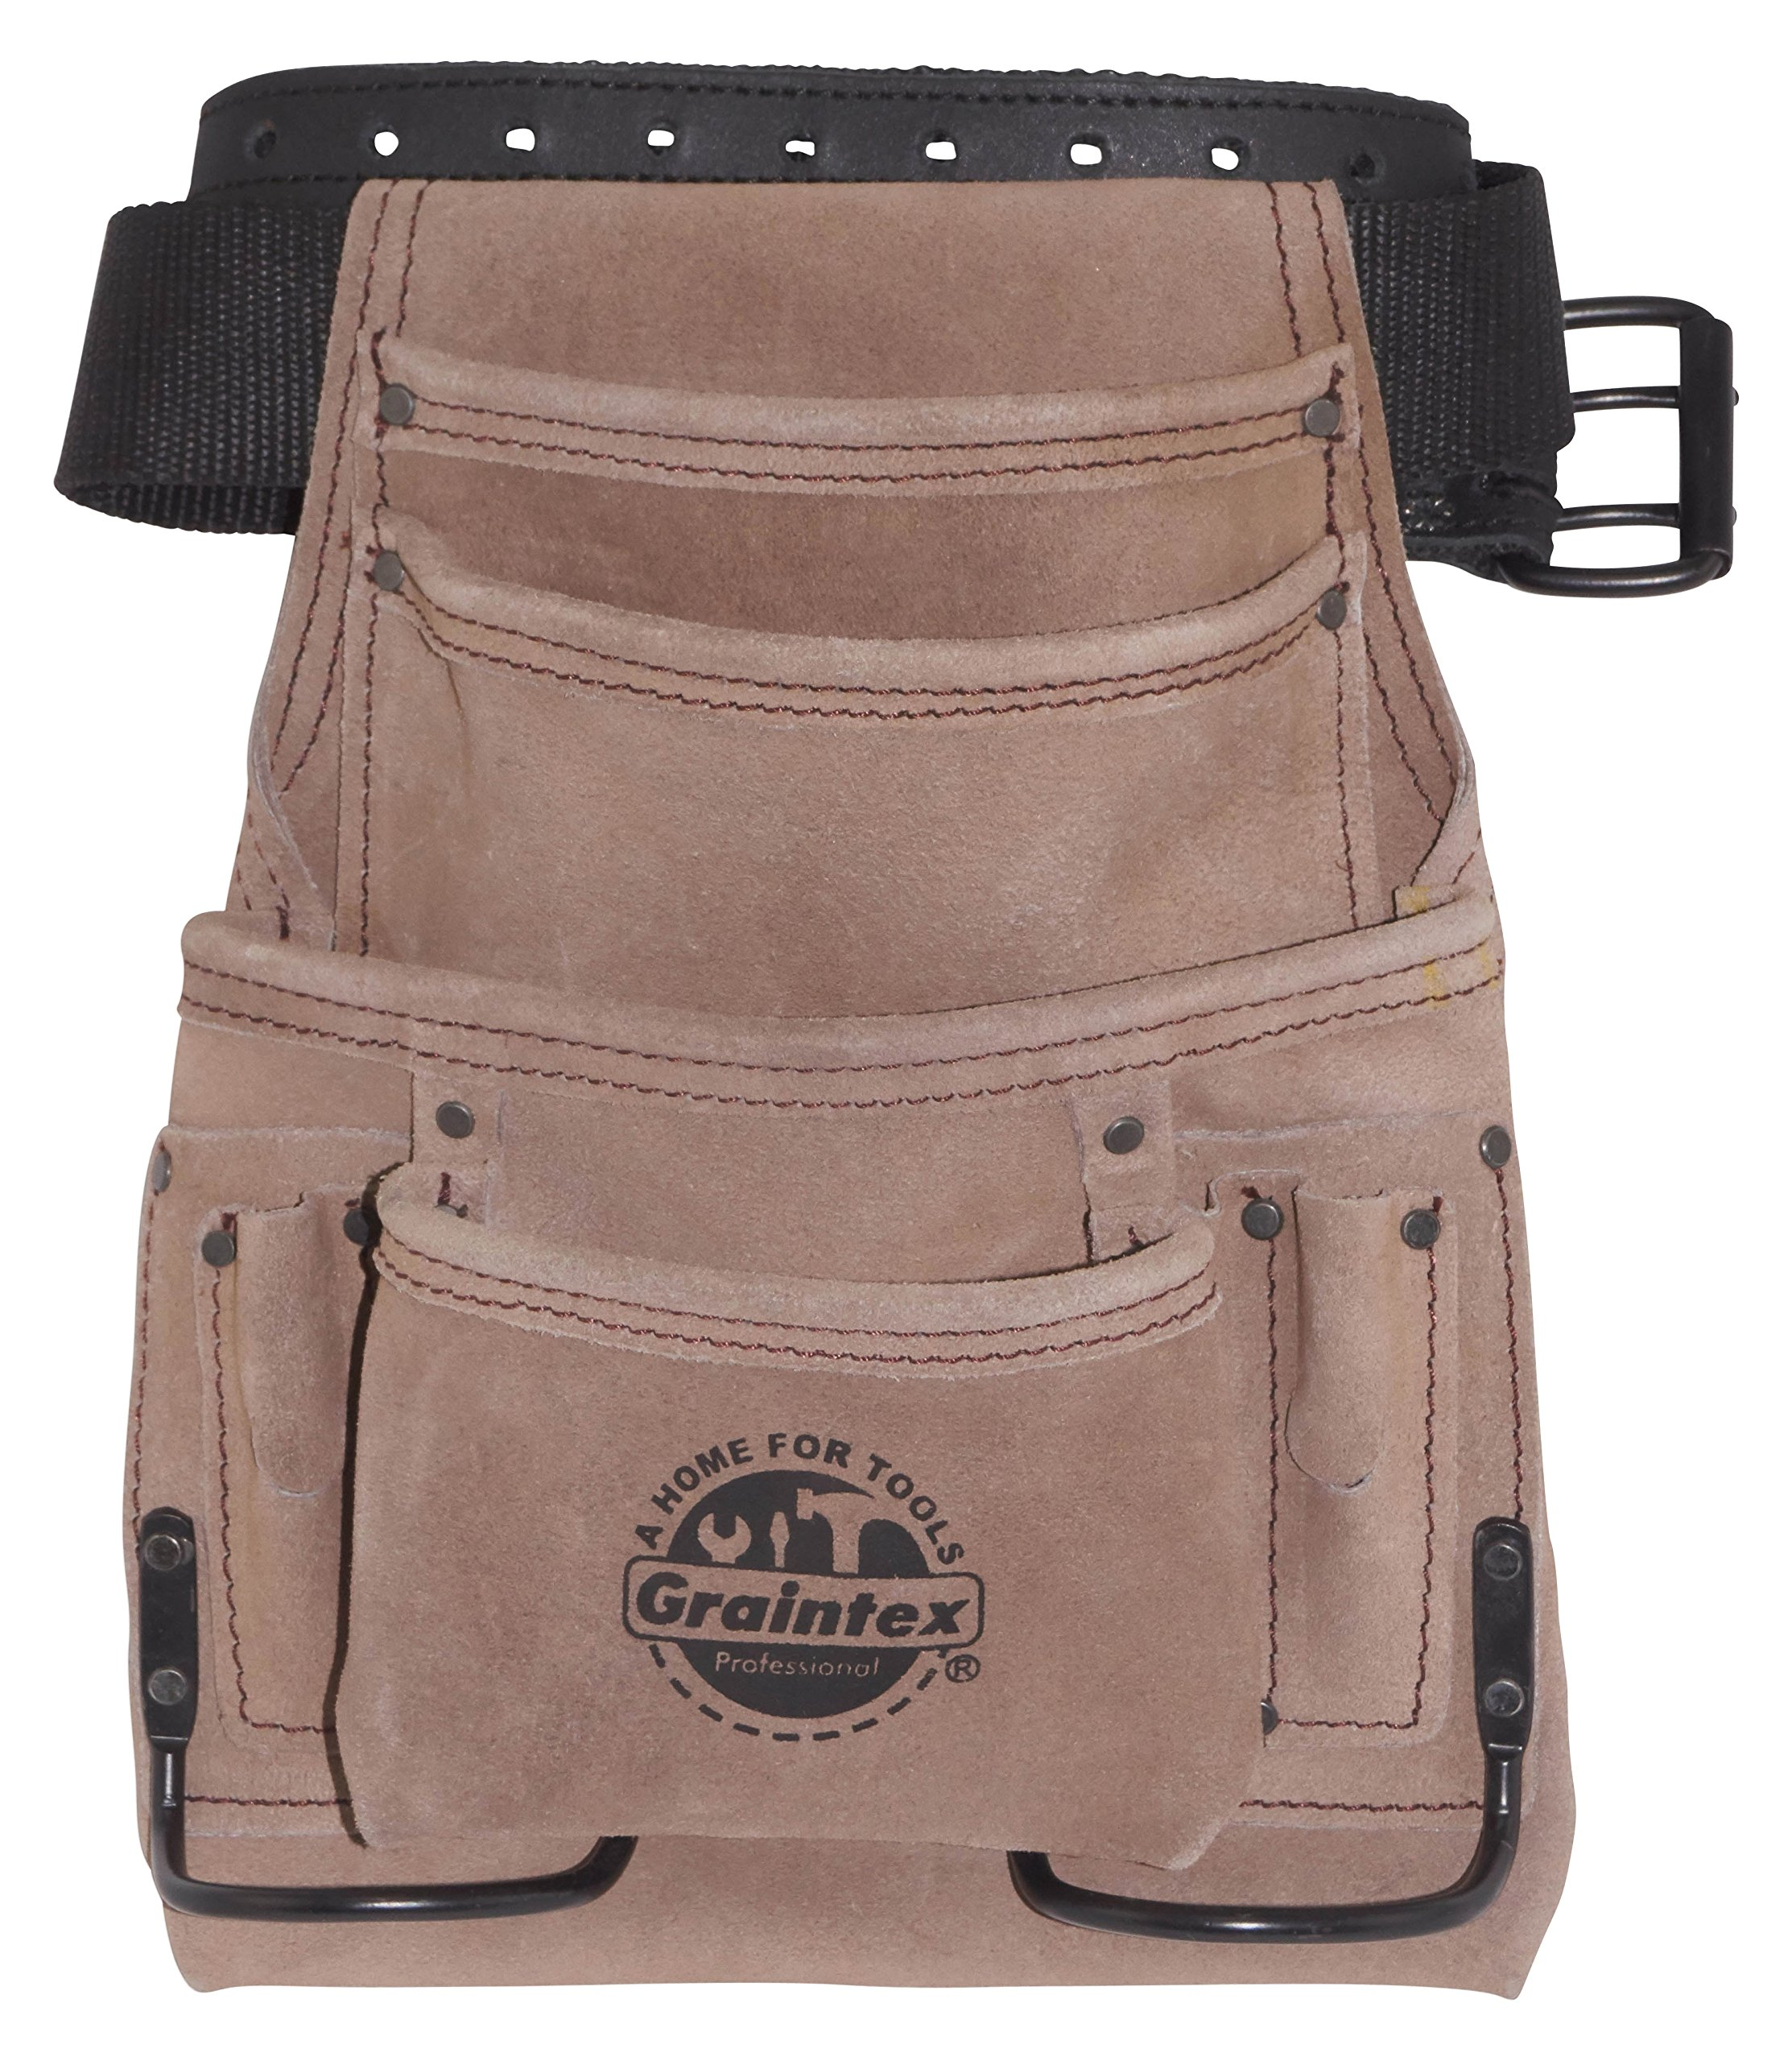 Graintex SS2270 10 Pocket Suede Leather Nail & Tool Pouch with 2'' Leather/Webbing Belt Double Needle Roller Buckle